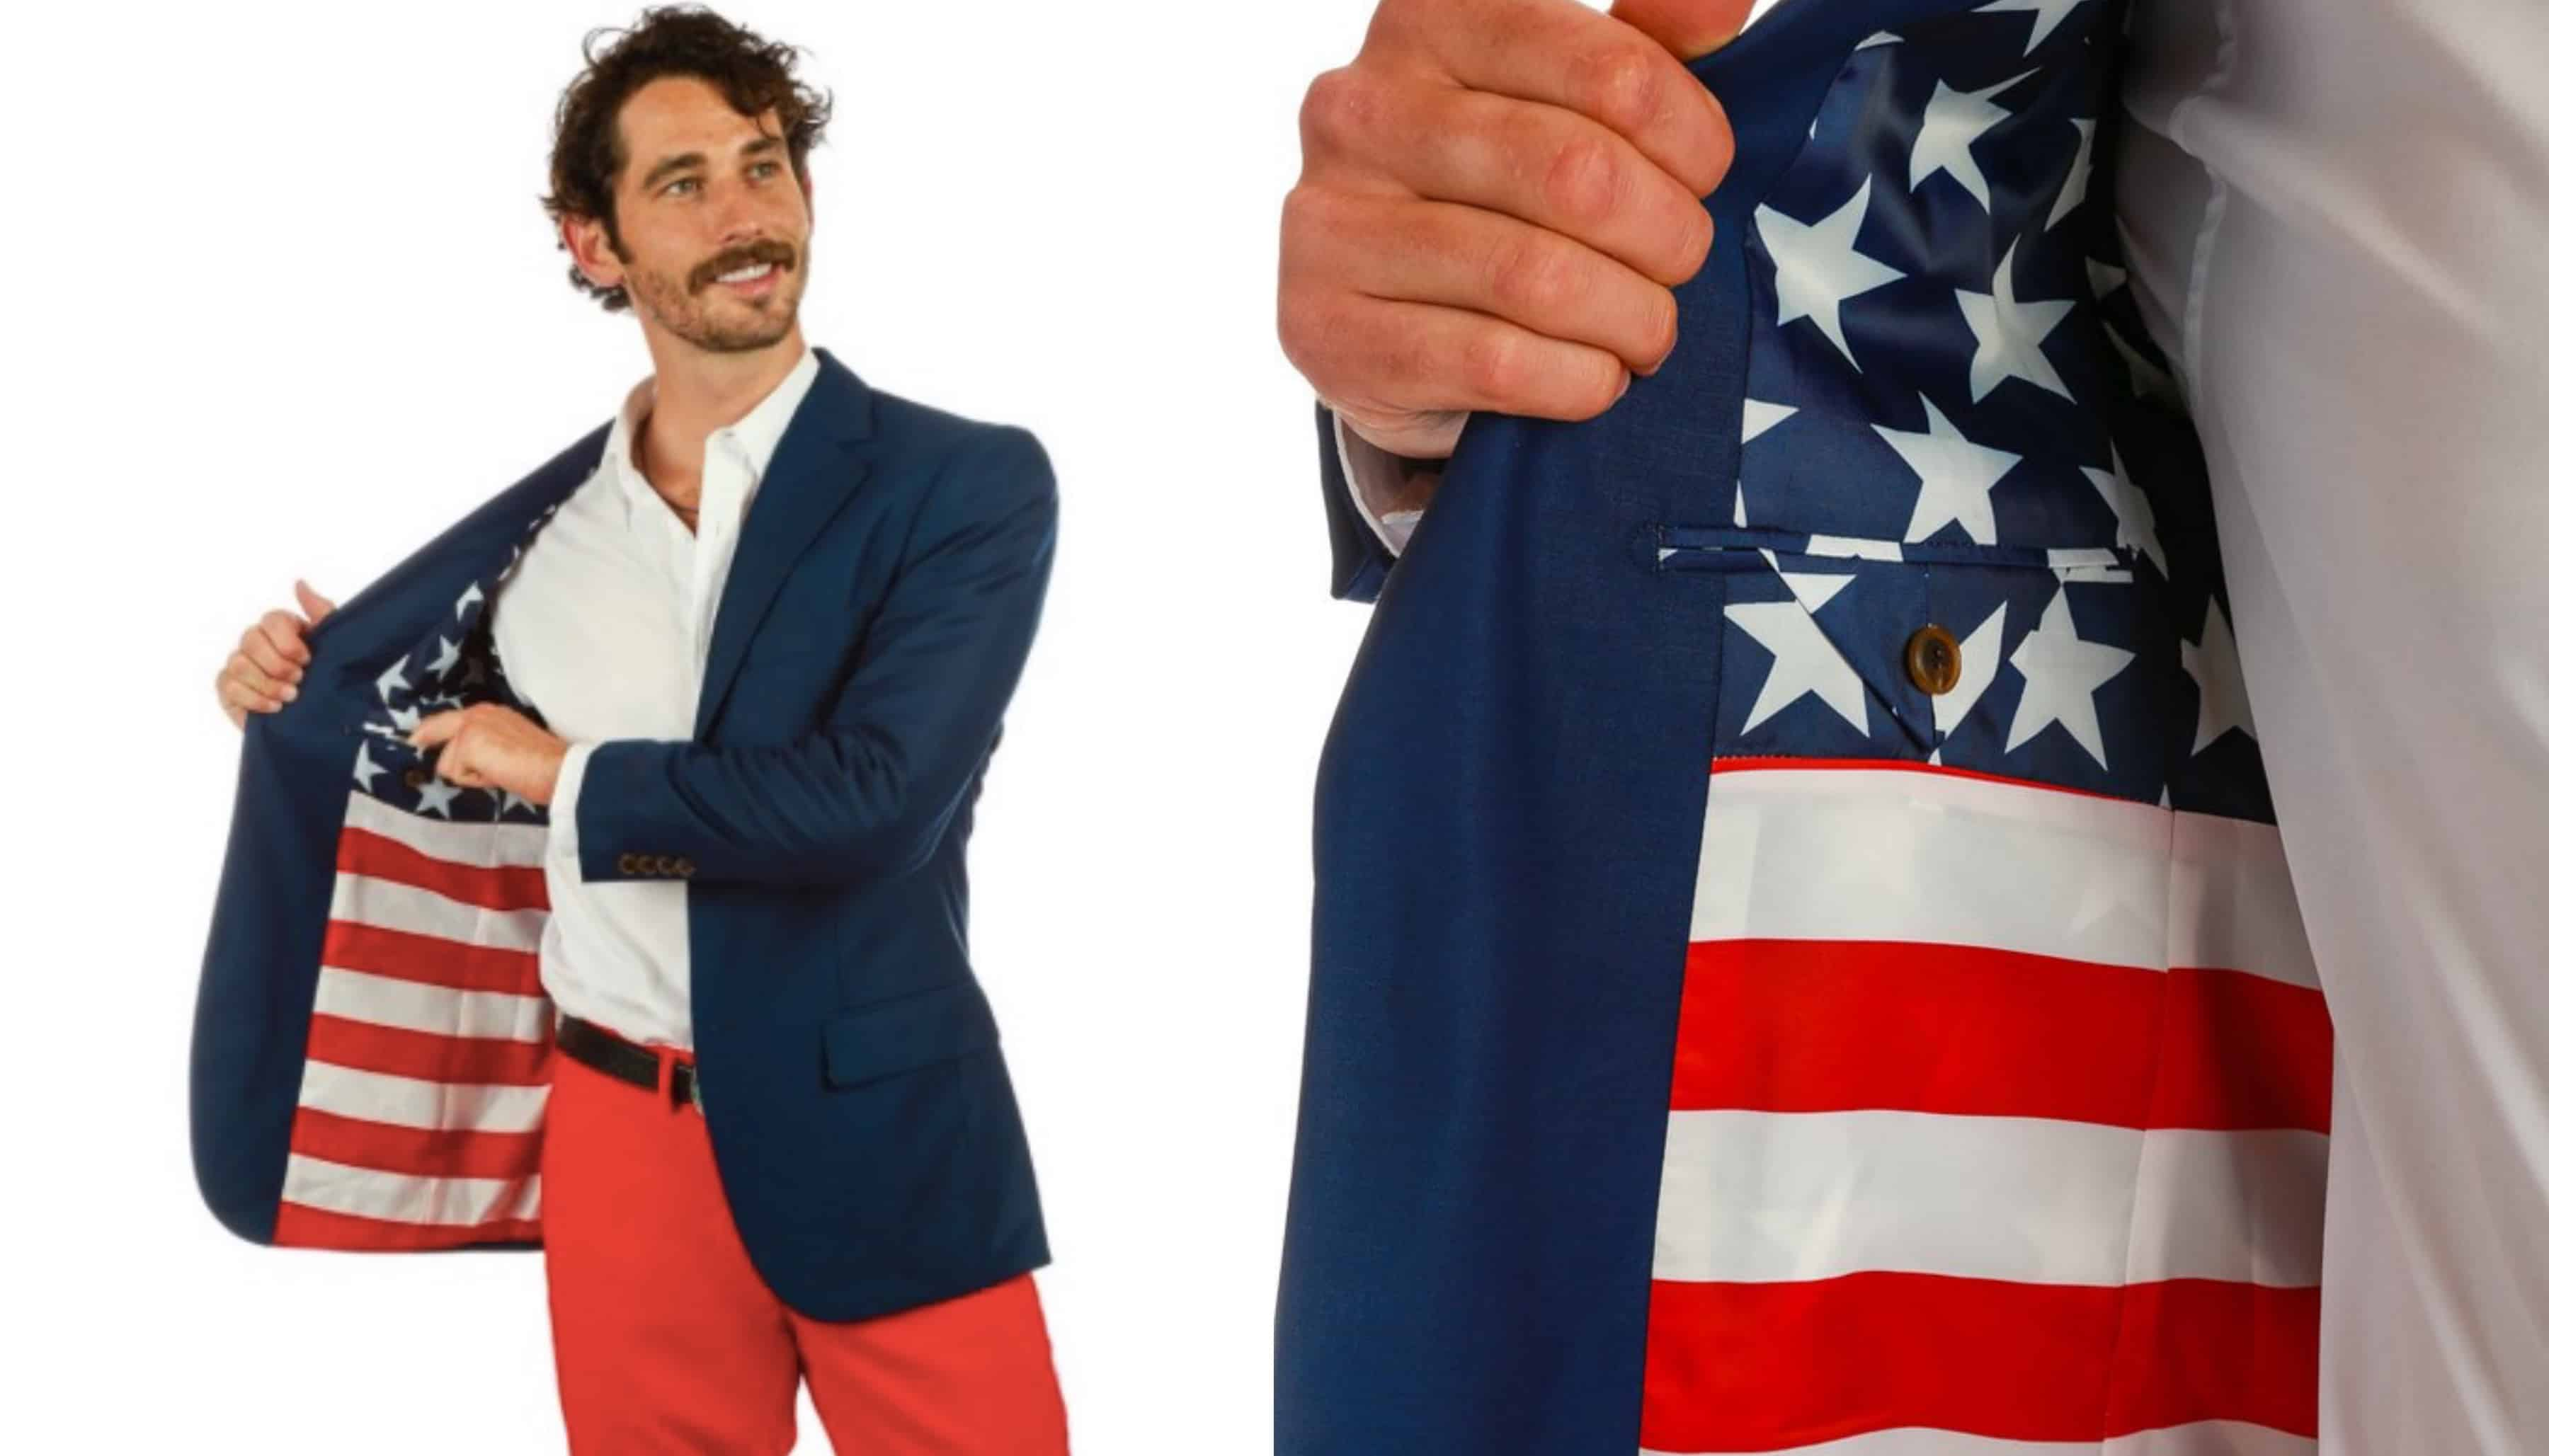 patriotic-gifts-american-flag-blazer